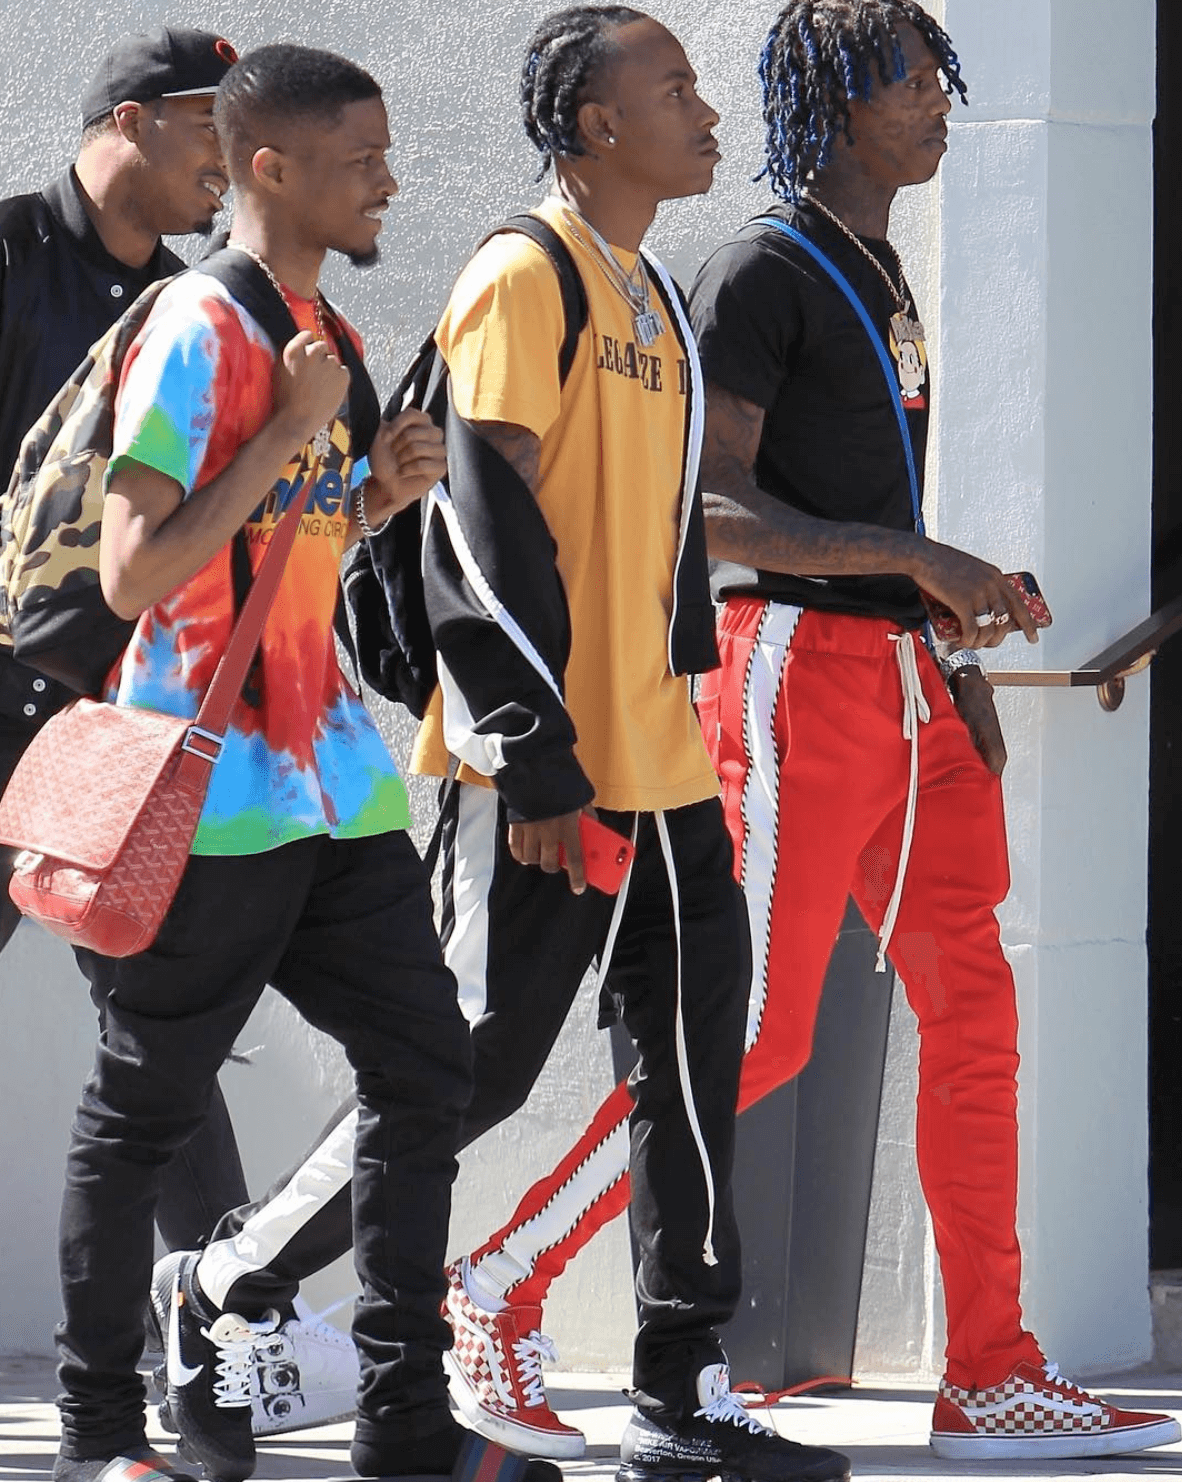 "Rich the Kid in the The 10"" Nike Air Vapormax"" & Famous Dex in the Vans Old School"